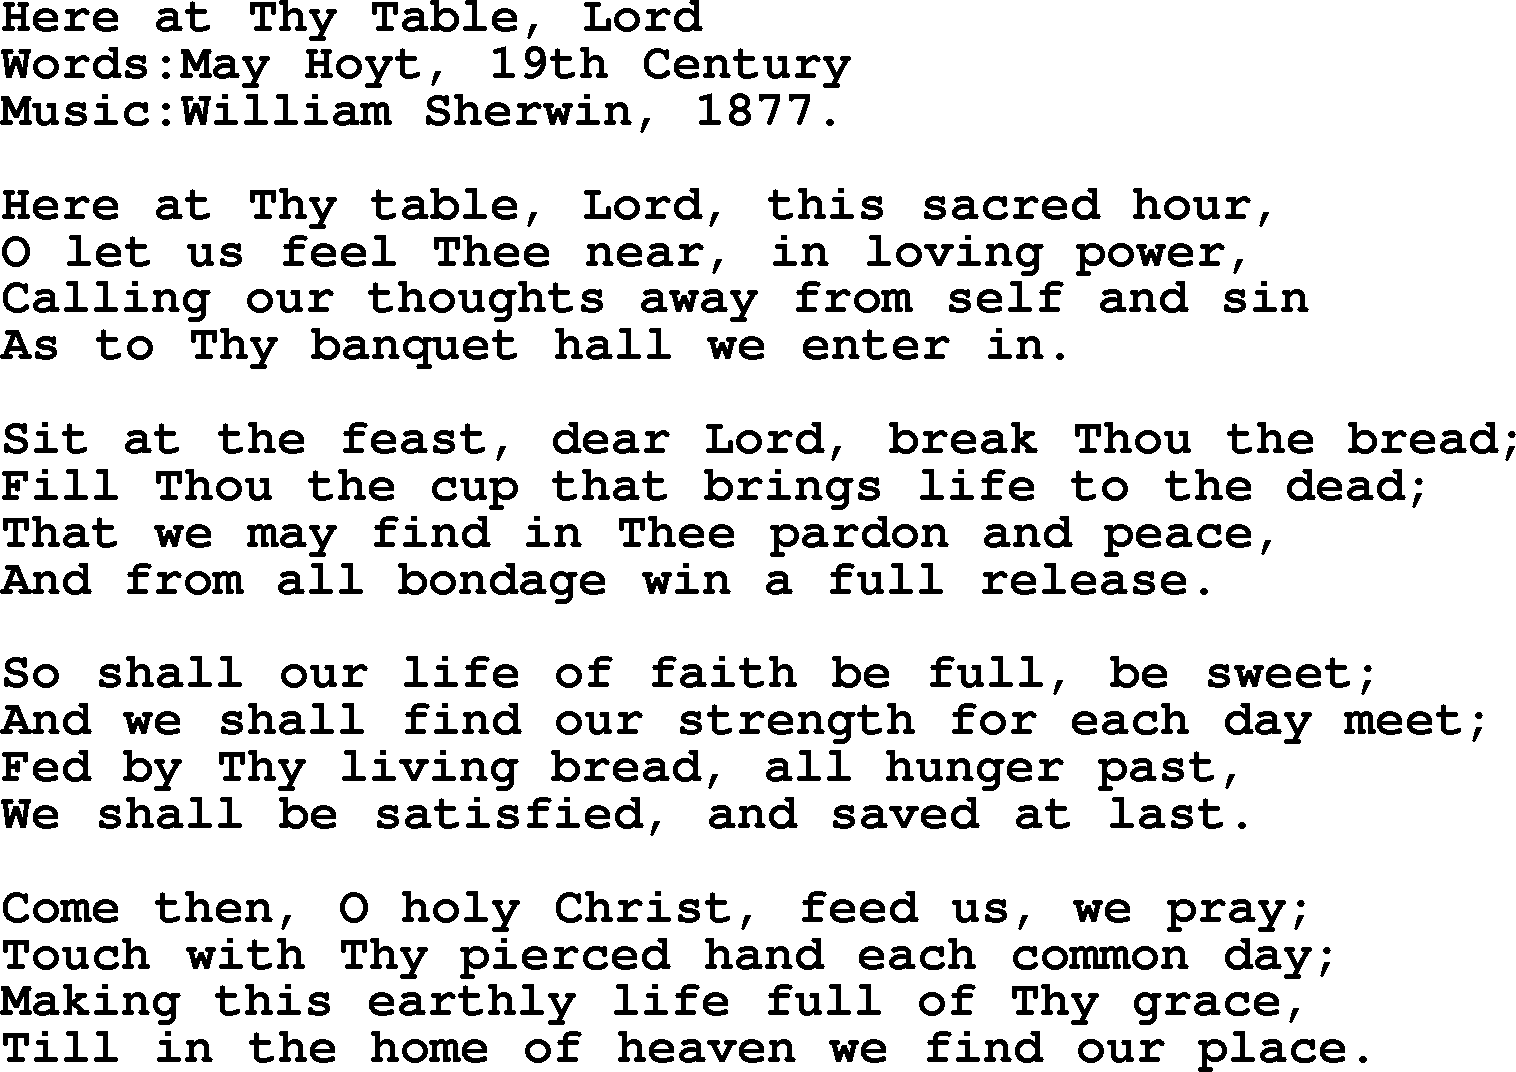 Hymns and Songs for The Eucharist(Communion): Here At Thy Table